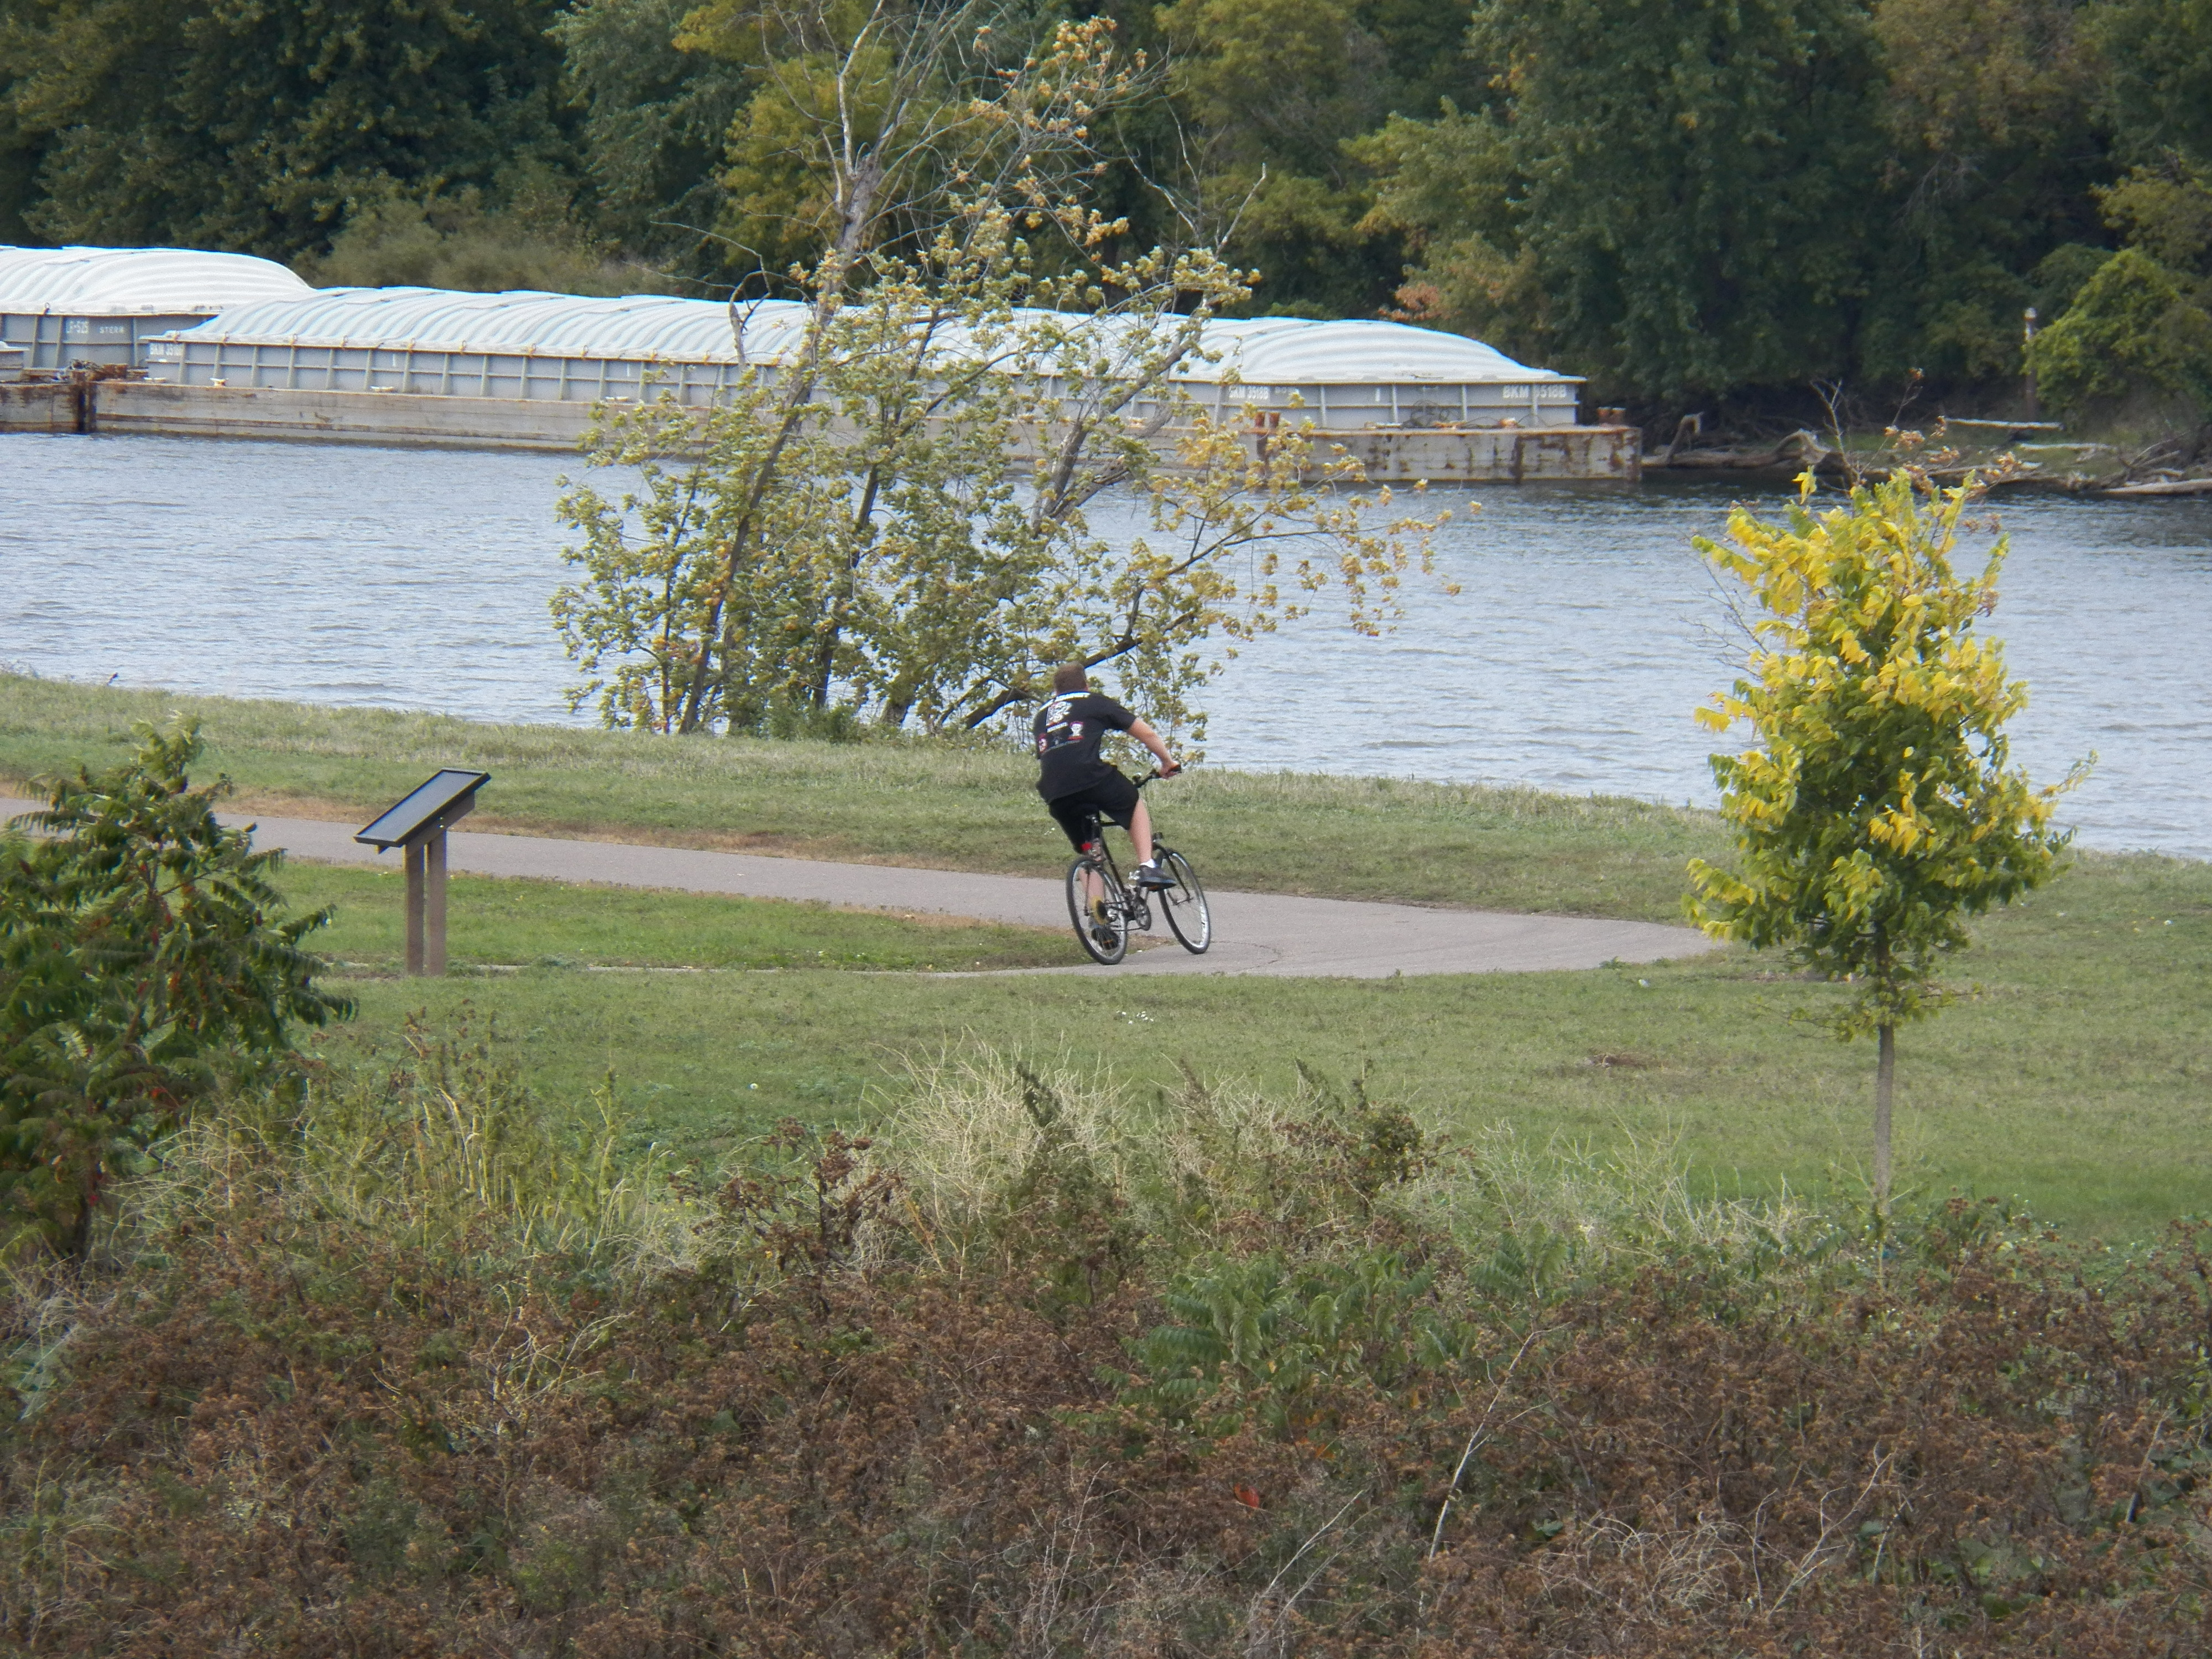 Man Riding Bike on Path